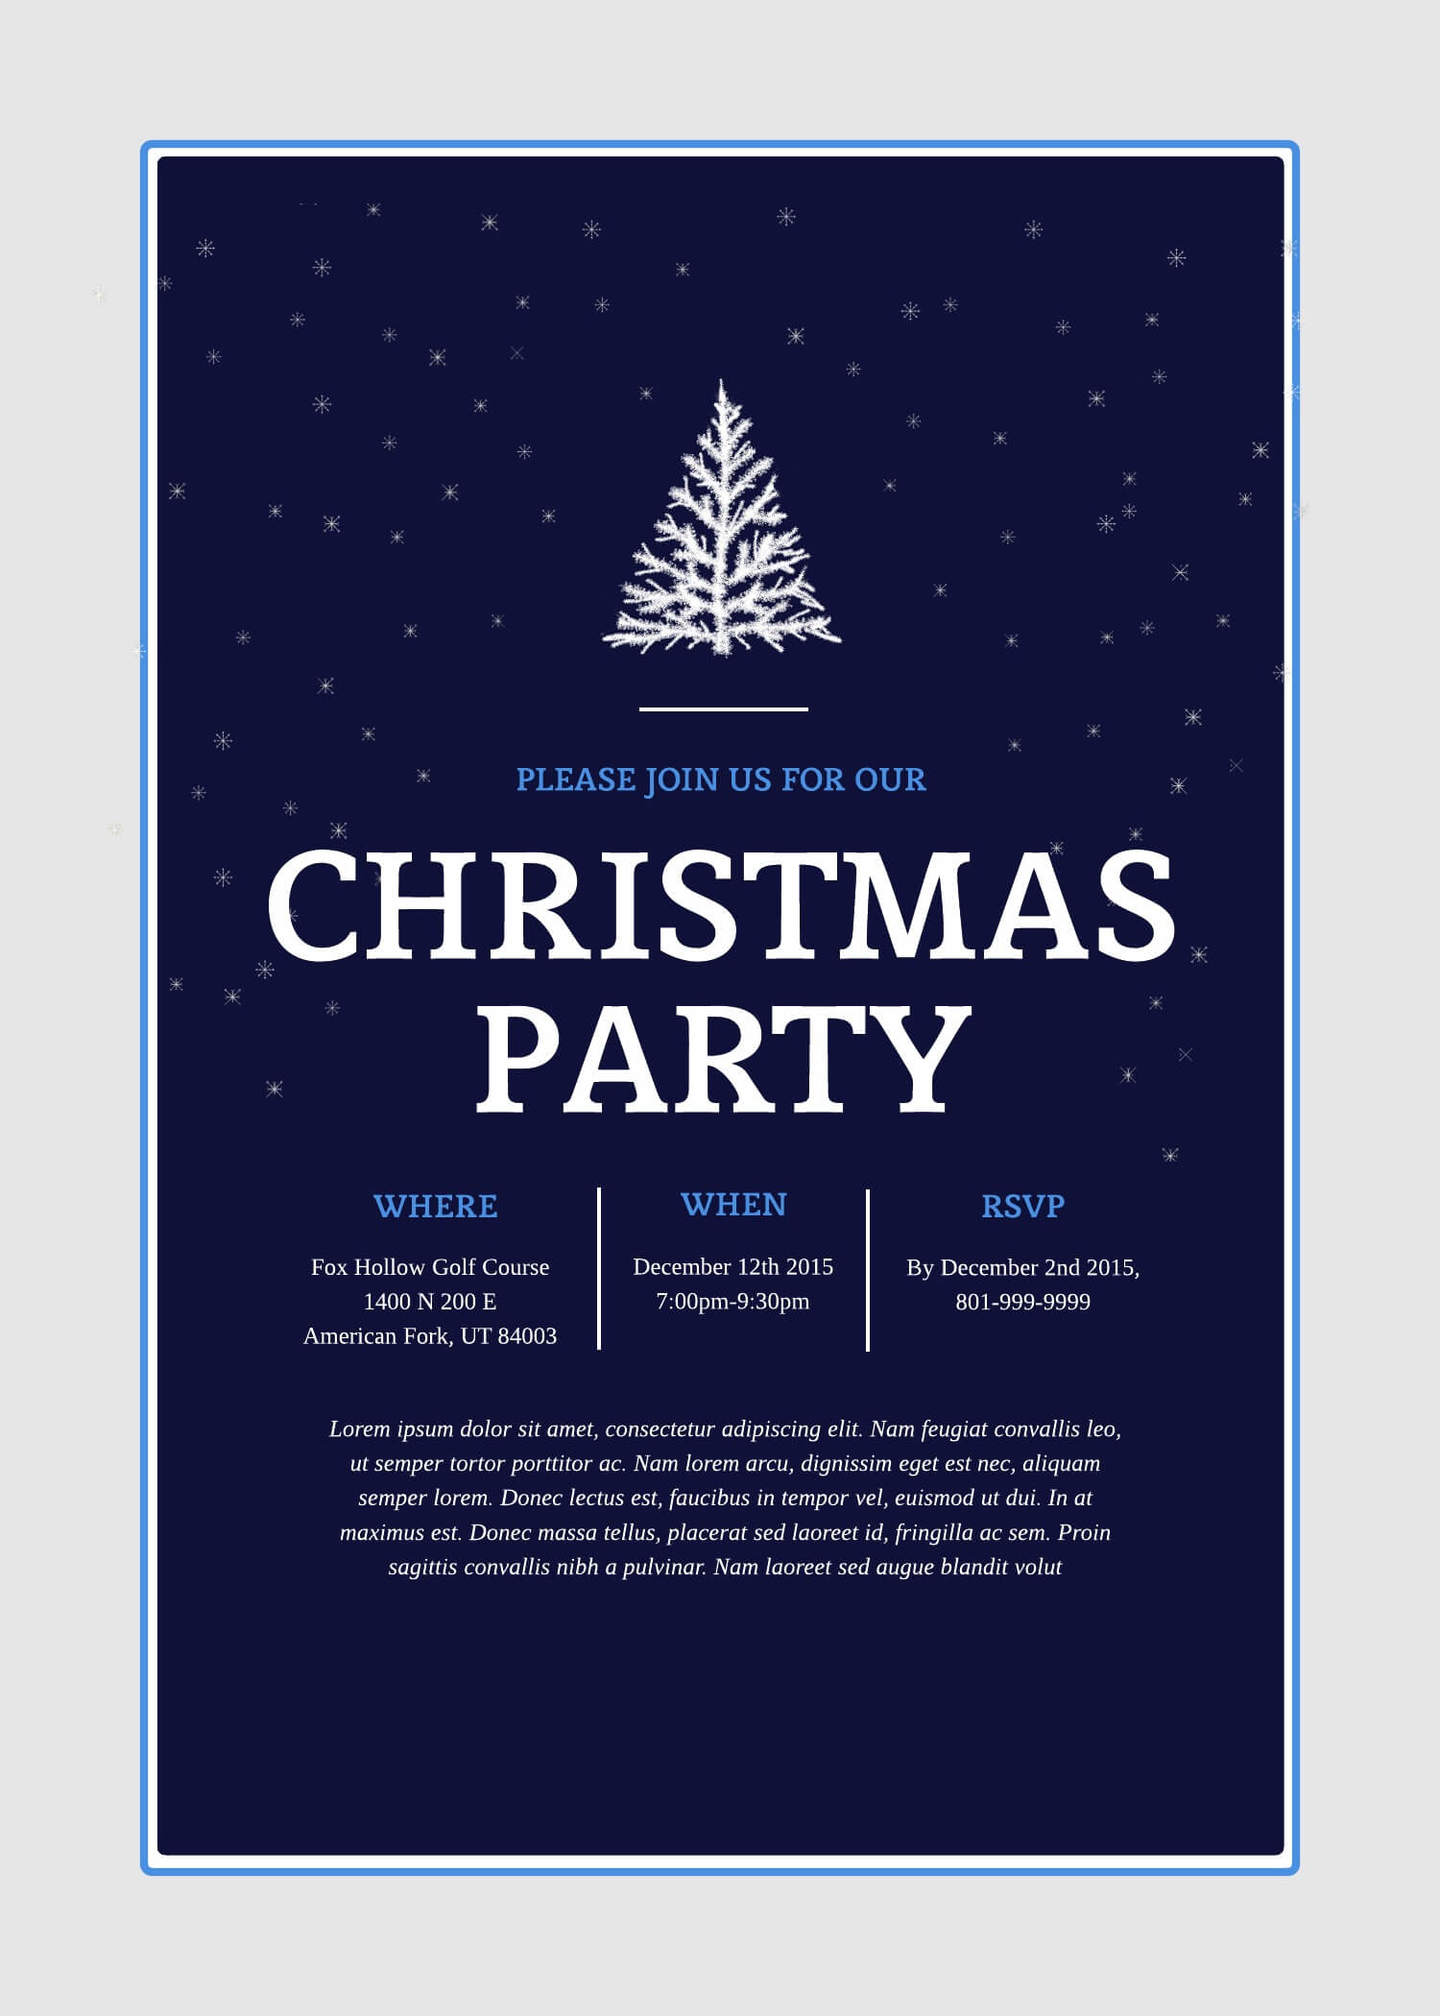 18 Free Holiday Templates & Examples - Lucidpress